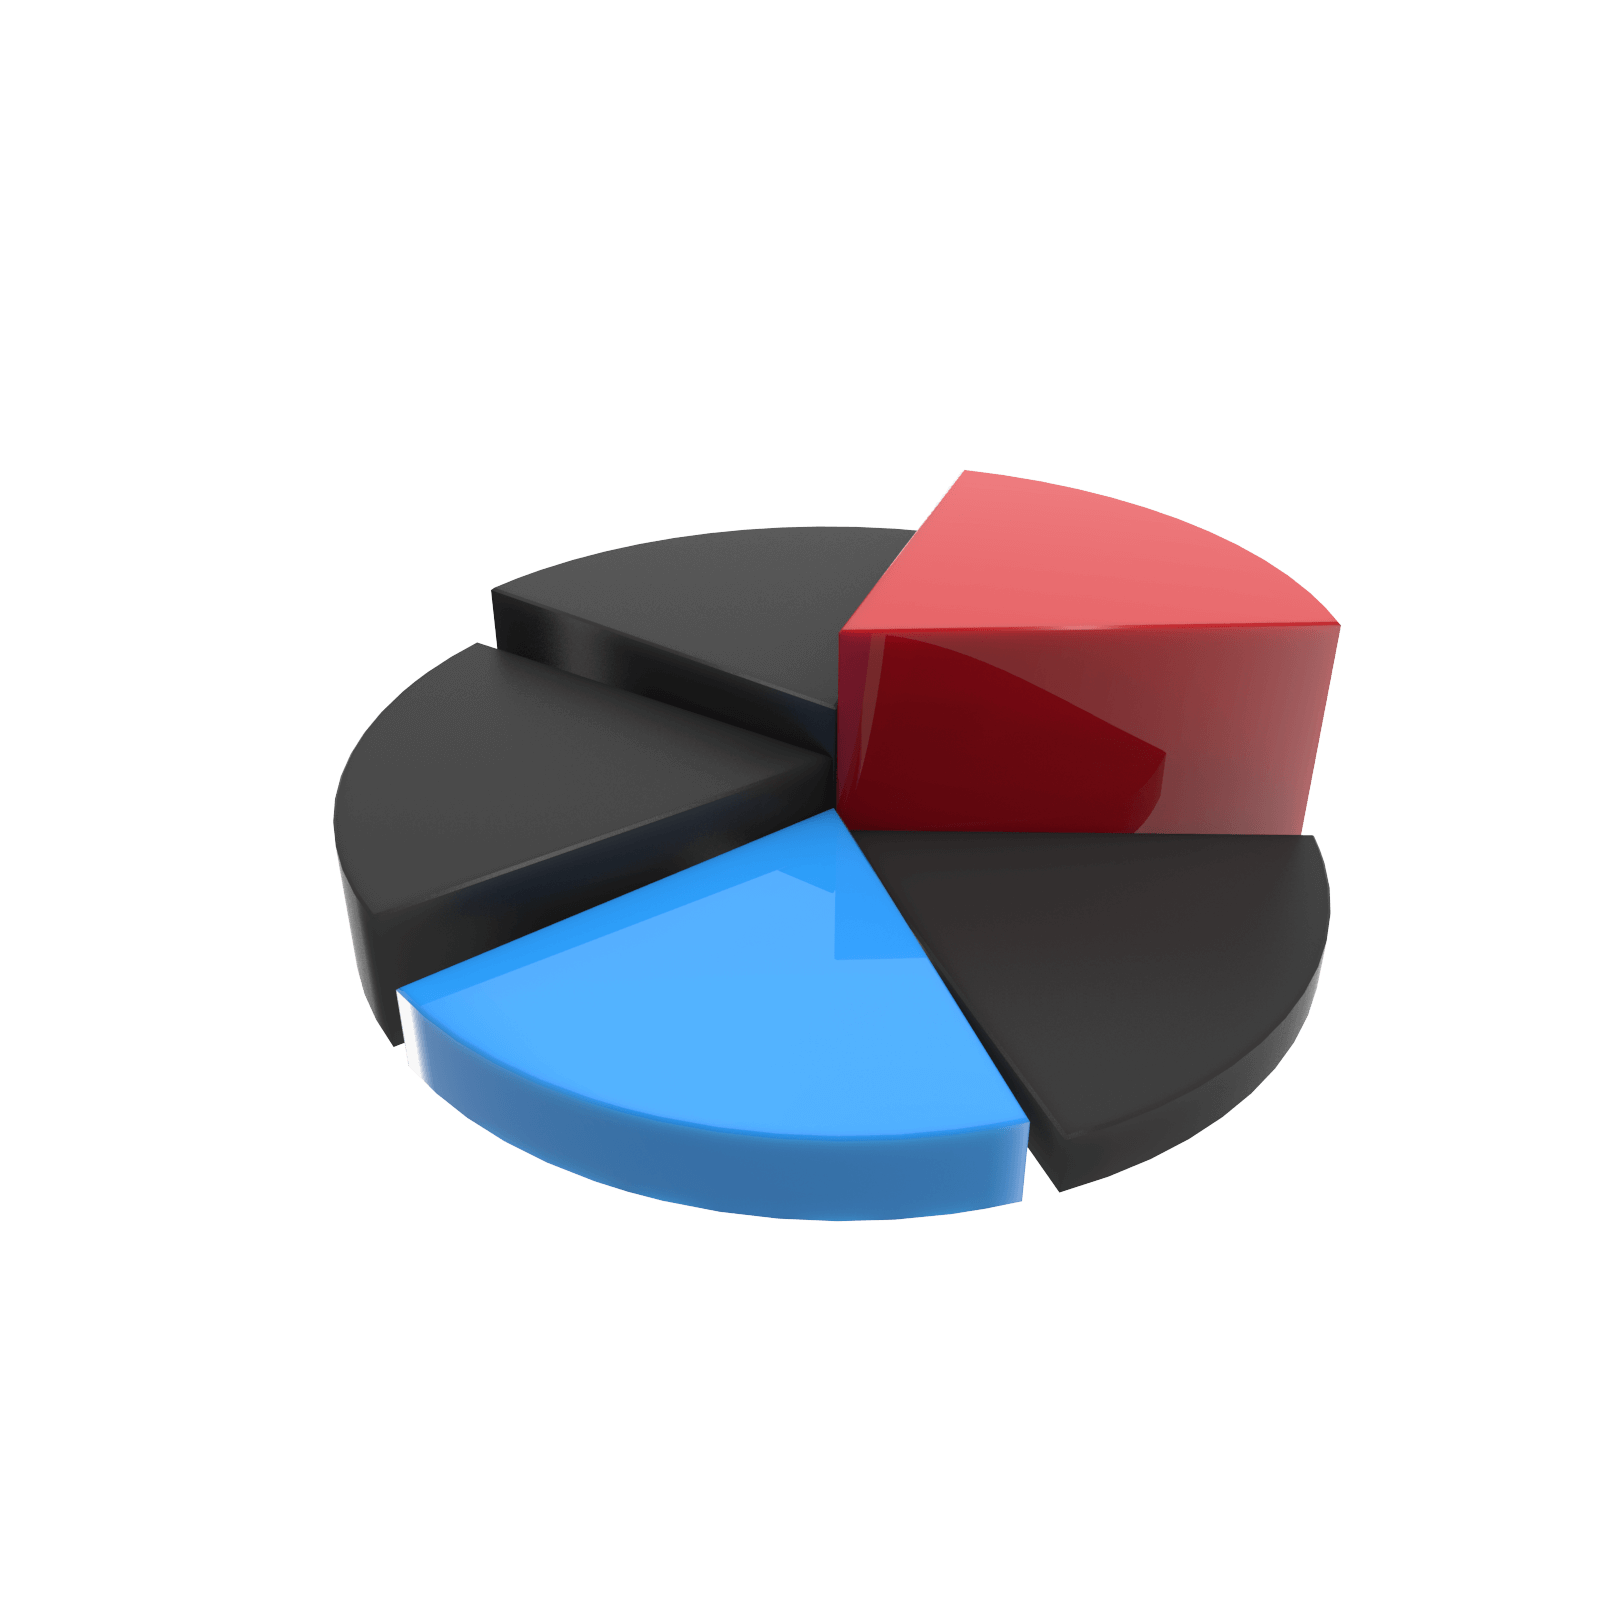 Free 3D Chart Pie [PNG 1600x1600] png